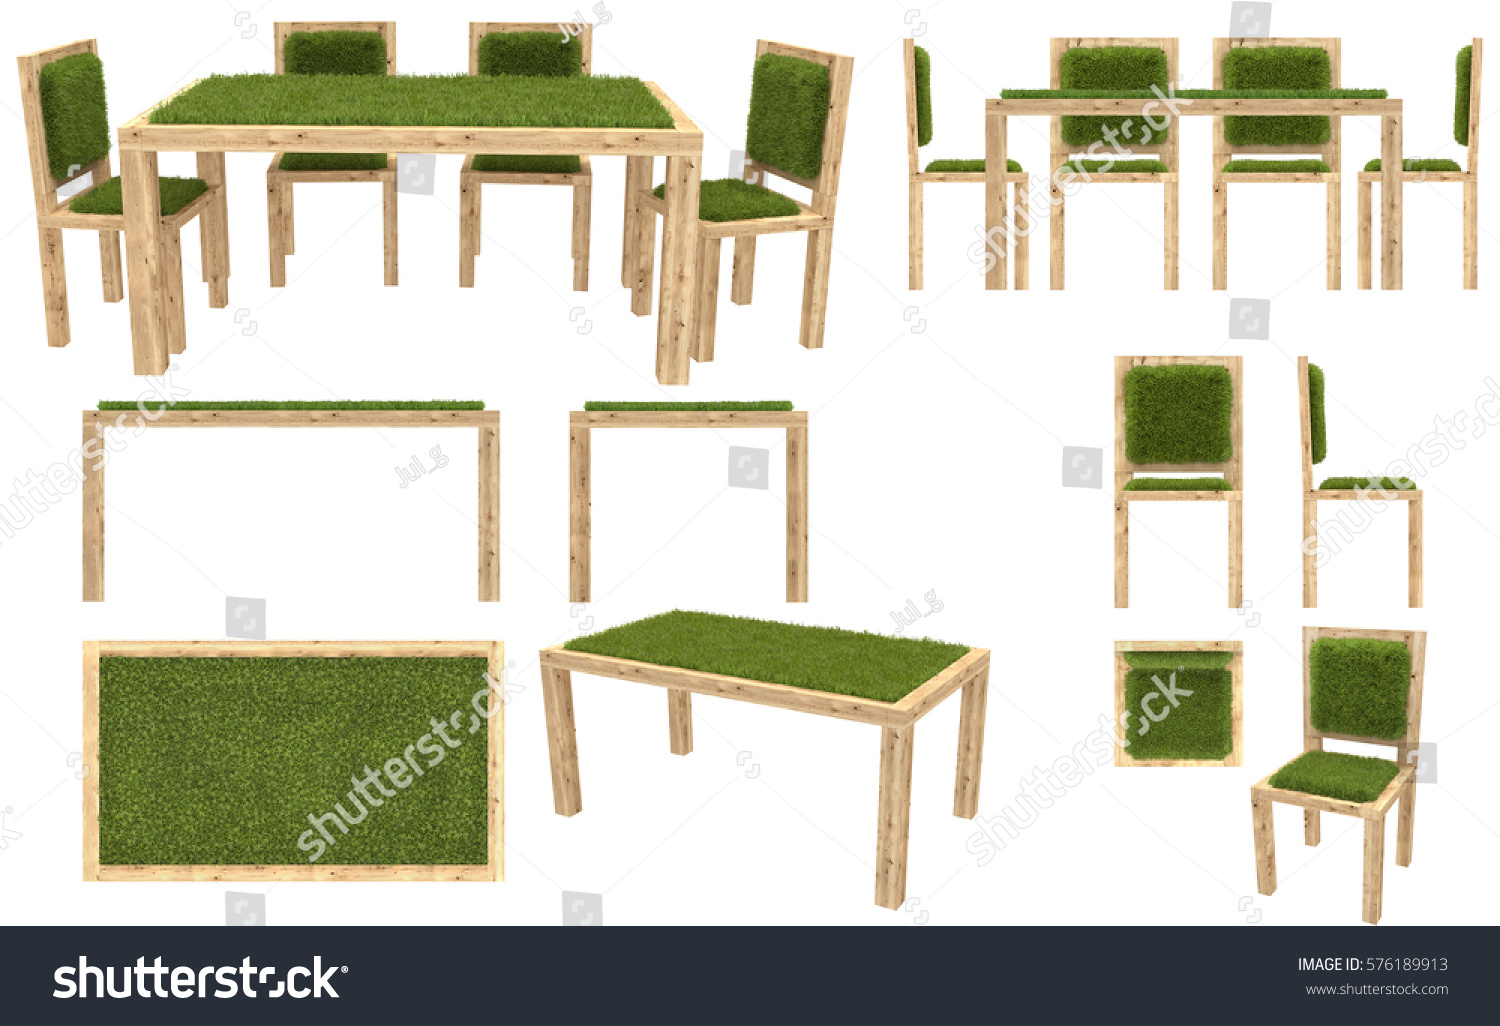 wooden table and chairs with grass cover garden furniture top view side view